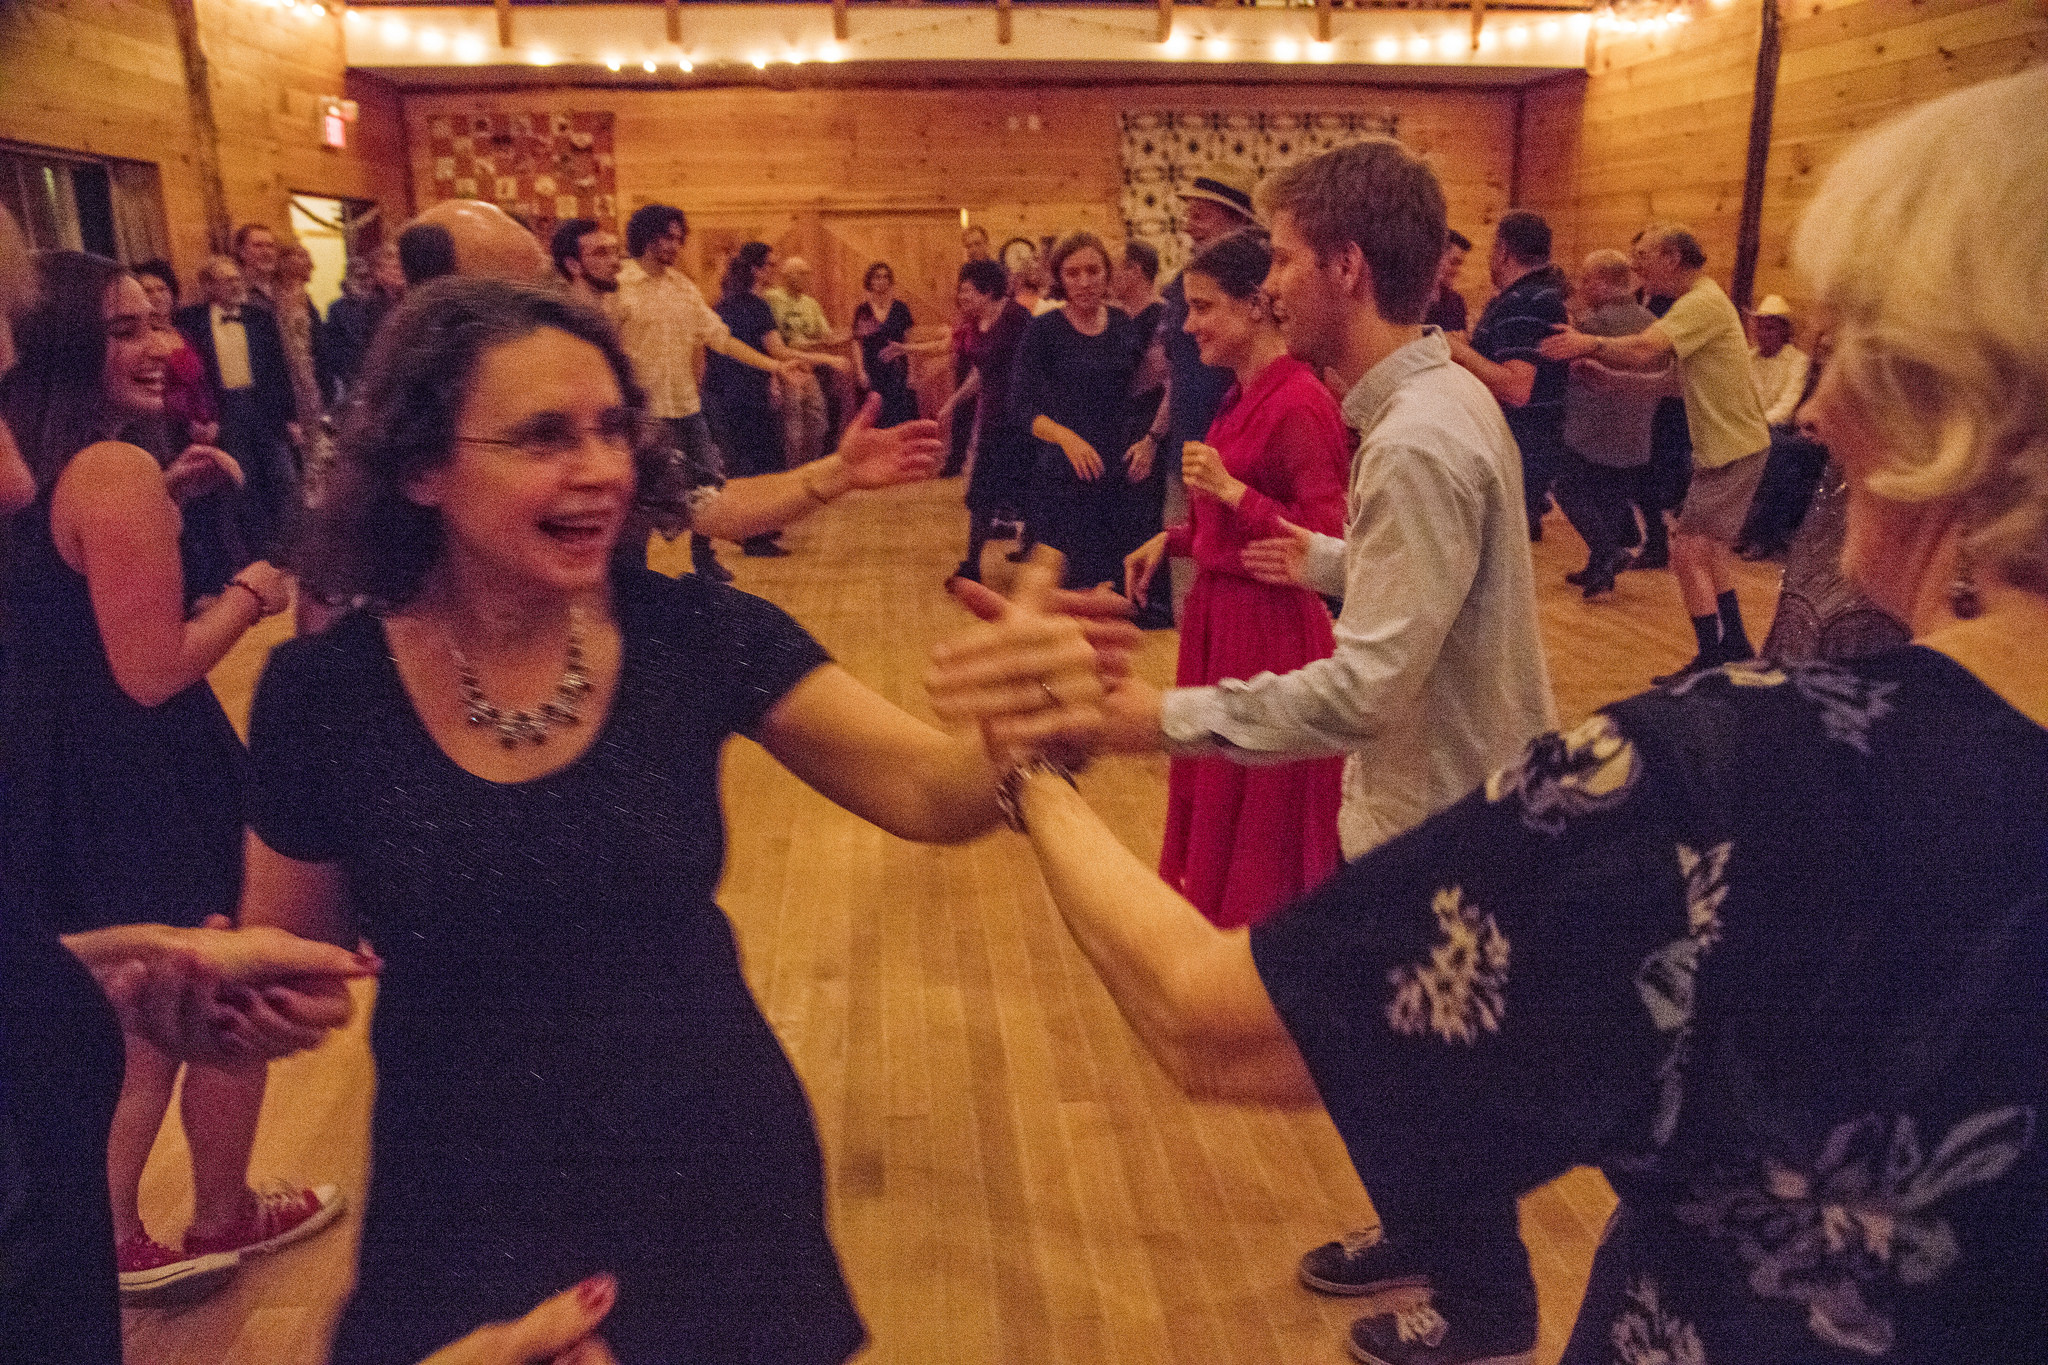 New Year's Eve Dance + Dinner - The Ashokan Center - Celebrating New Year's in the Hudson Valley